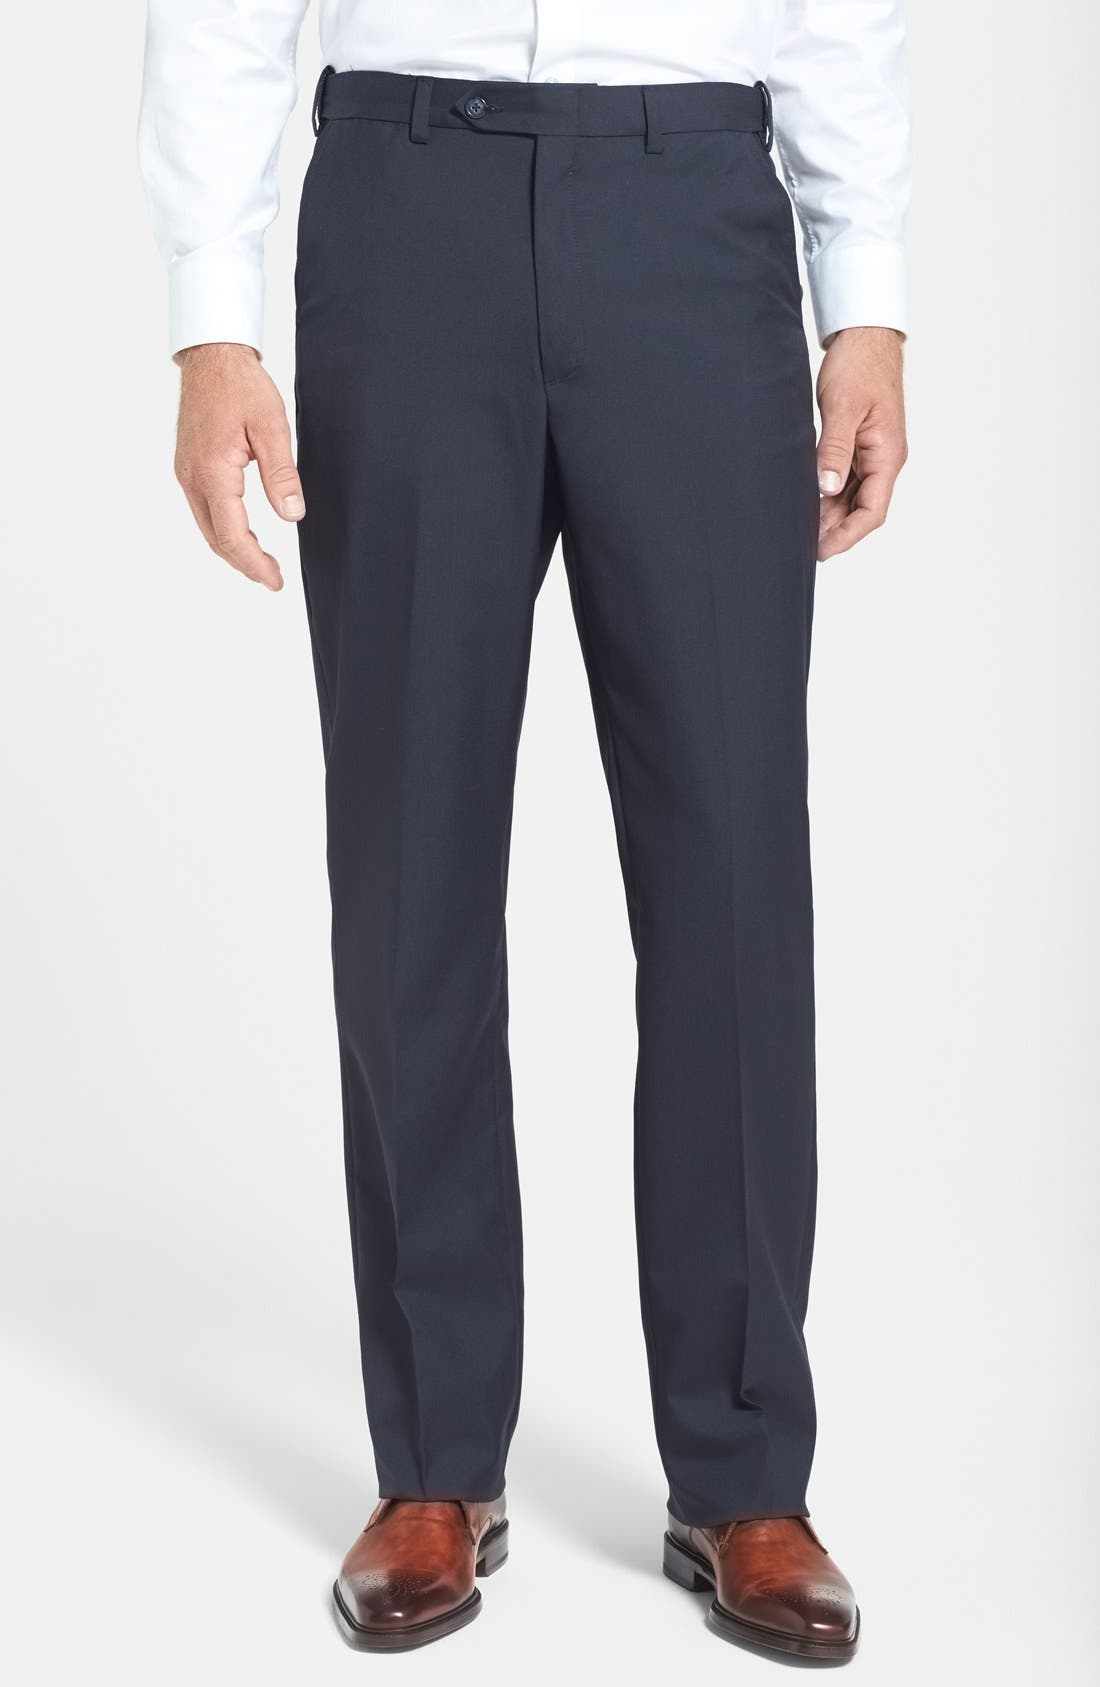 Self Sizer Waist Tropical Weight Flat Front Trousers,                         Main,                         color, Navy